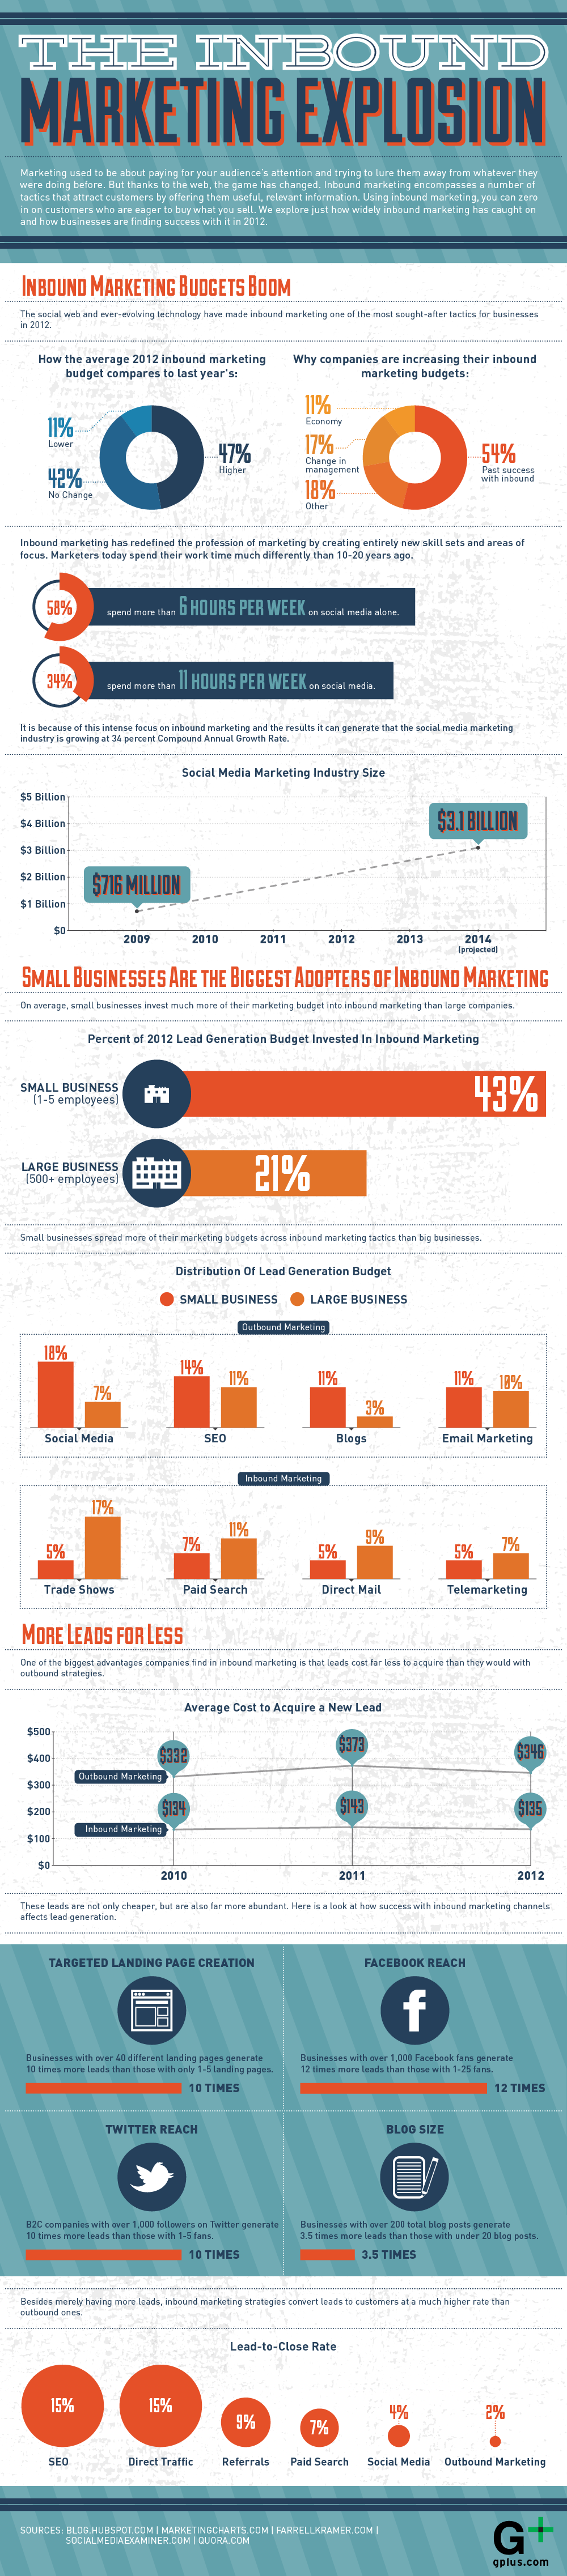 The inbound marketing explosion: infographic